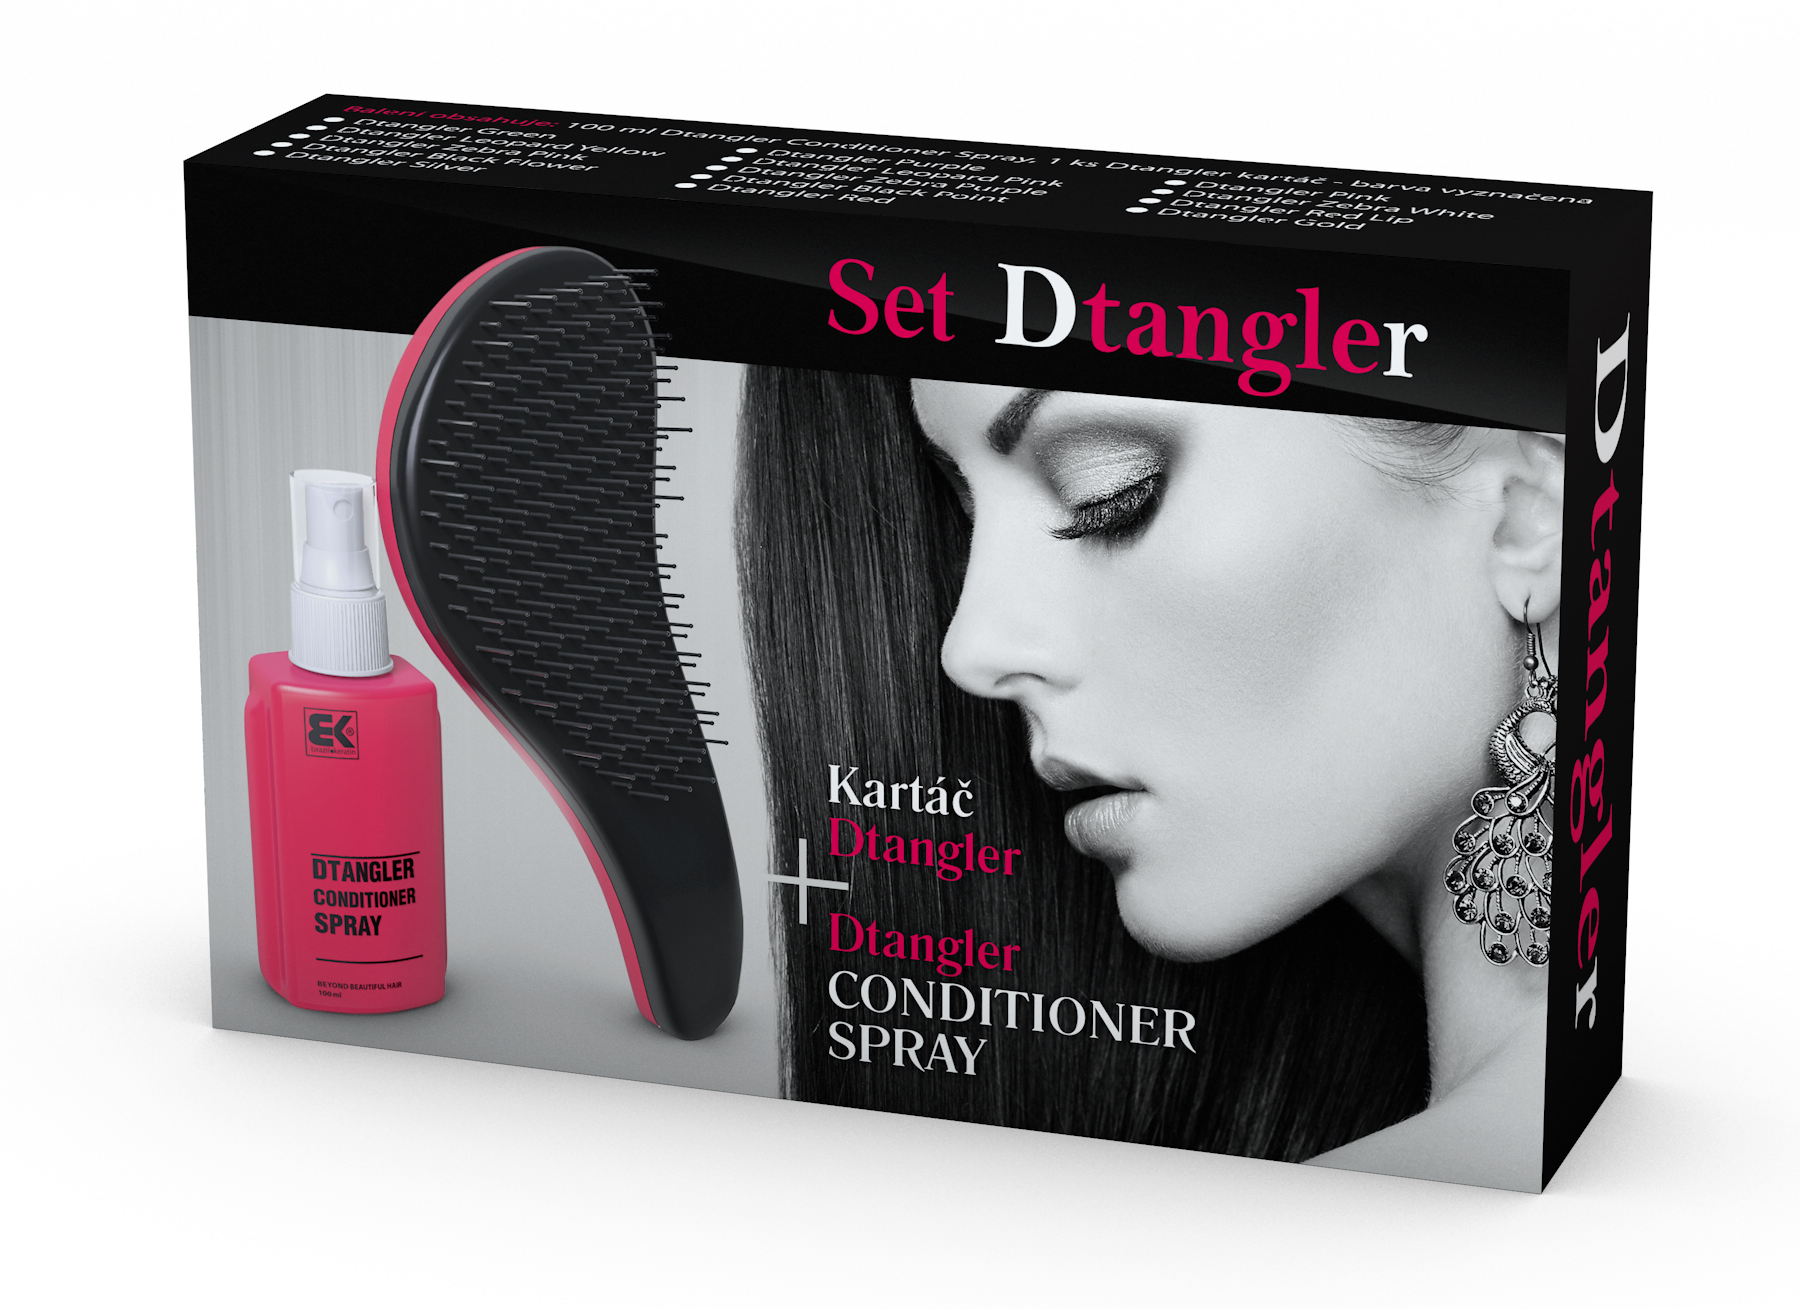 Dtangler Conditioner Spray Set